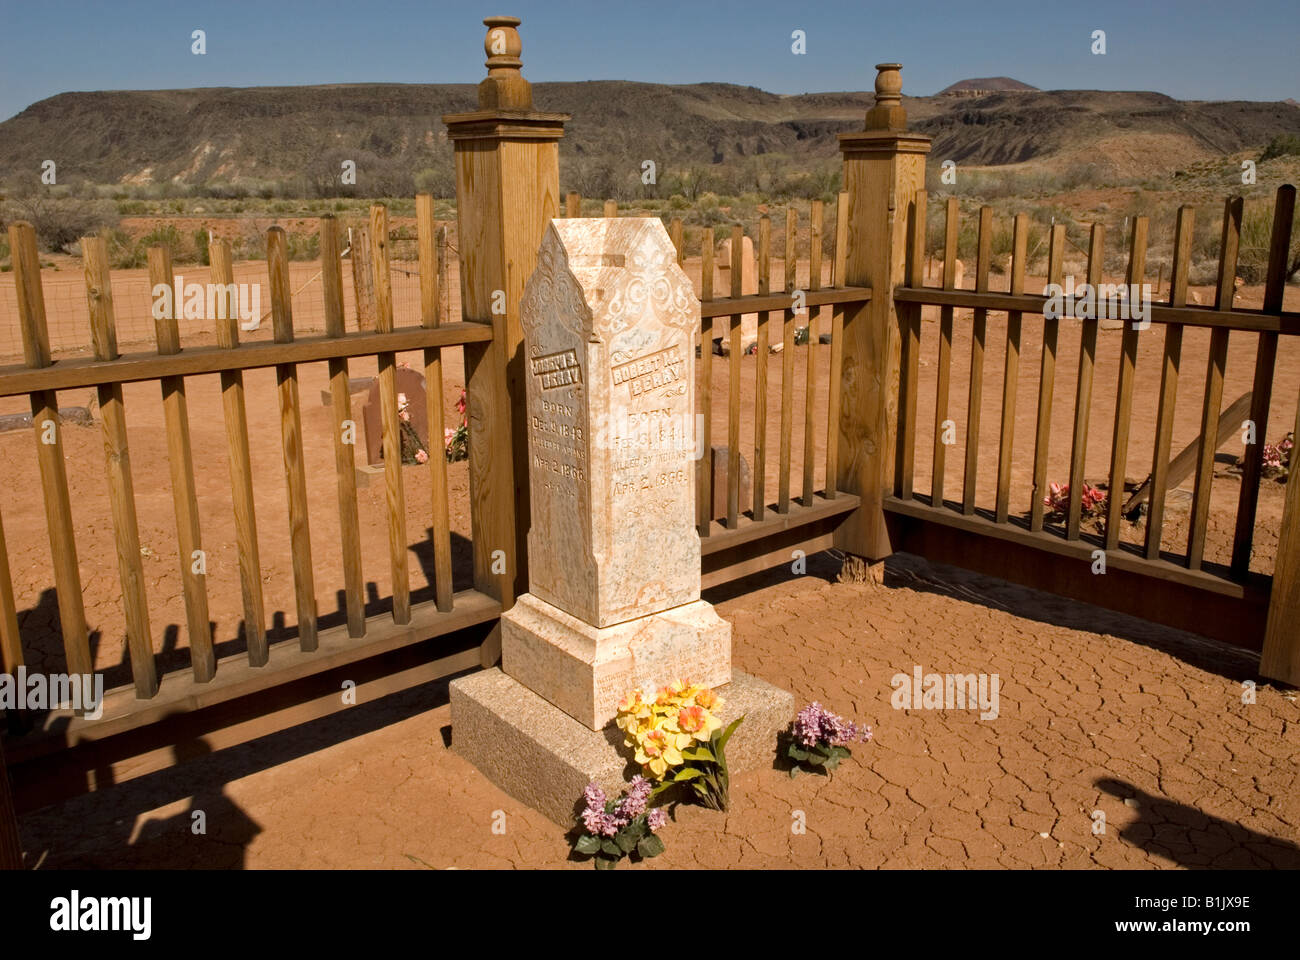 Photograph of Headstone in Grafton Cemetery, Grafton Ghost Town, Utah, USA. Located near Zion National Park. Stock Photo